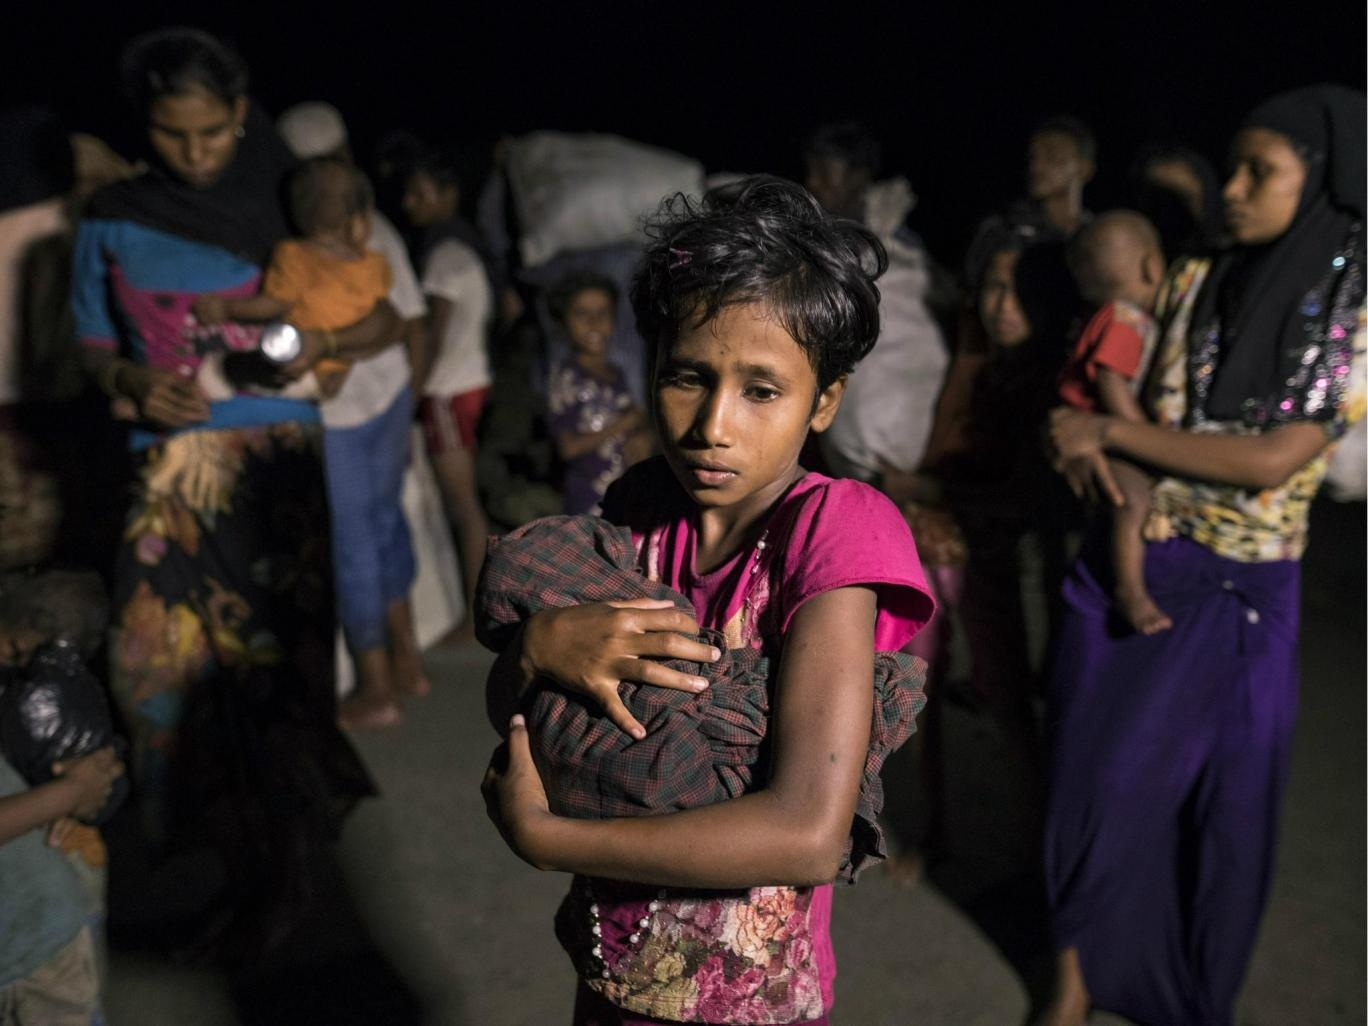 340,000 children 'outcast and desperate' in squalid Bangladesh: Unicef